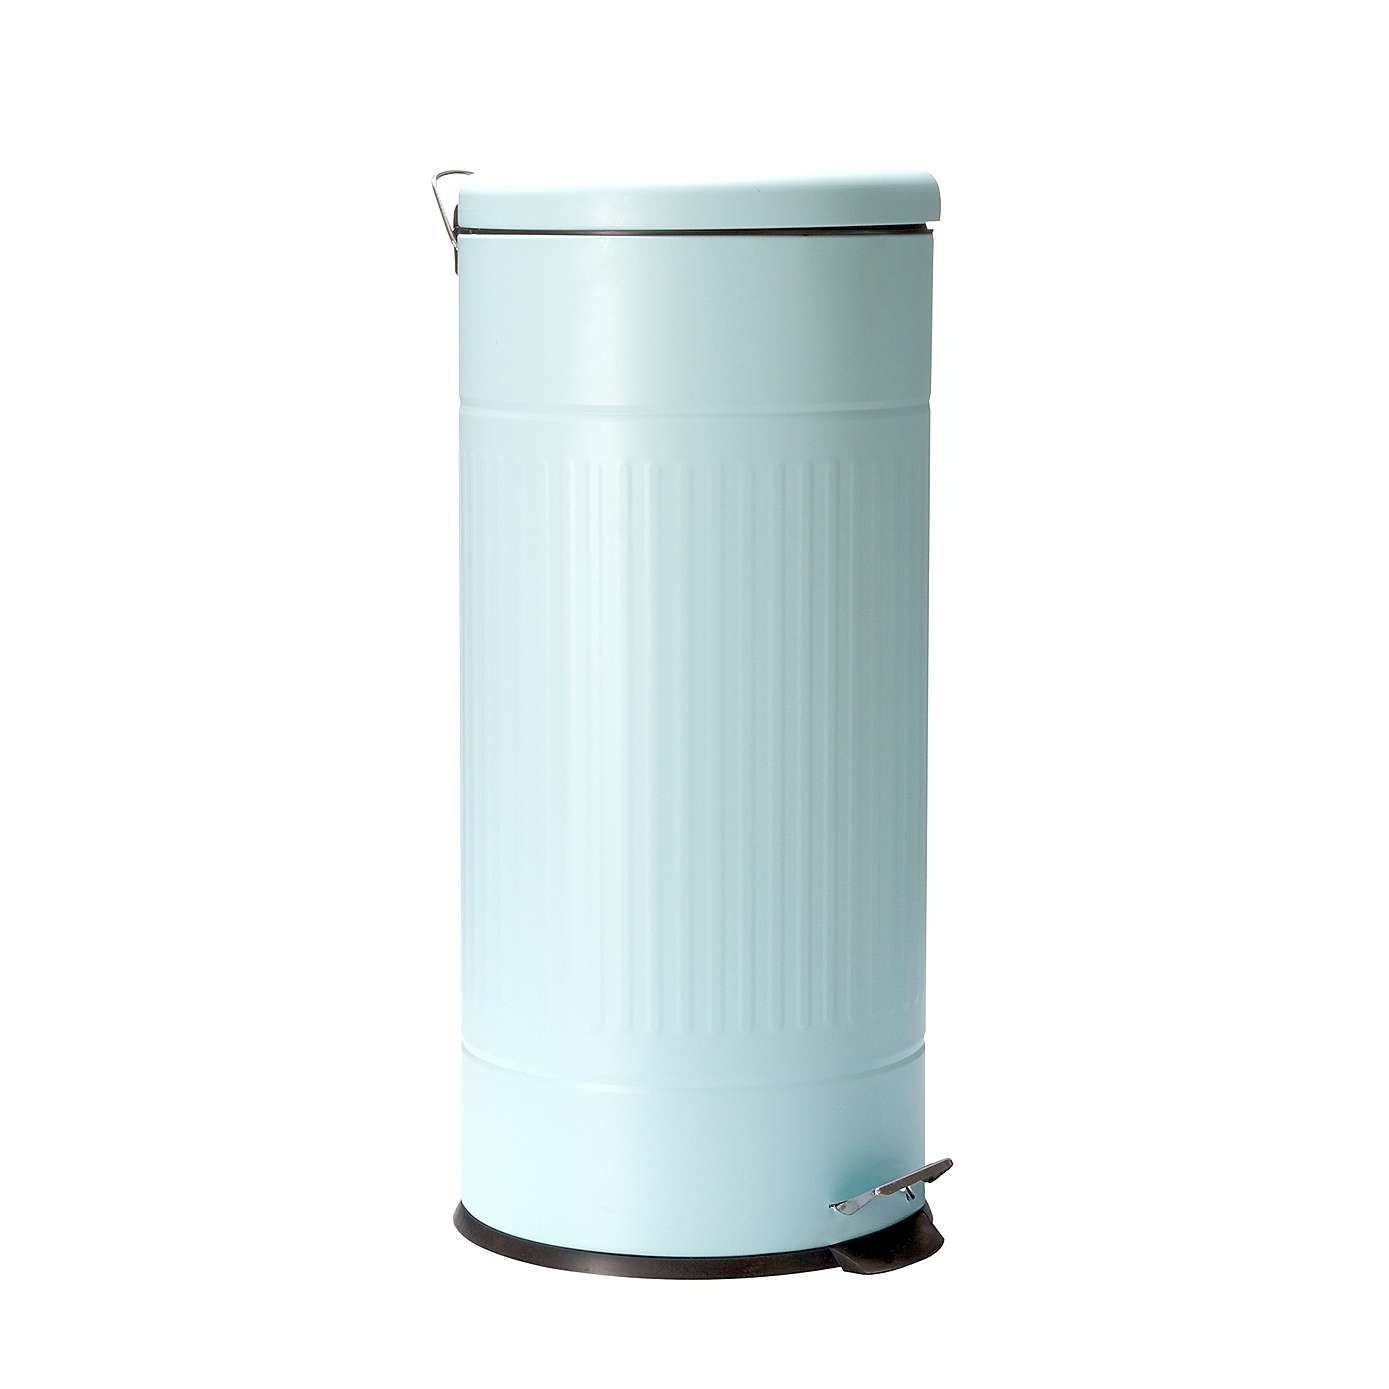 Candy Rose Pedal Bin in Duck Egg Blue (30 Litre) | 30th, Duck egg ...